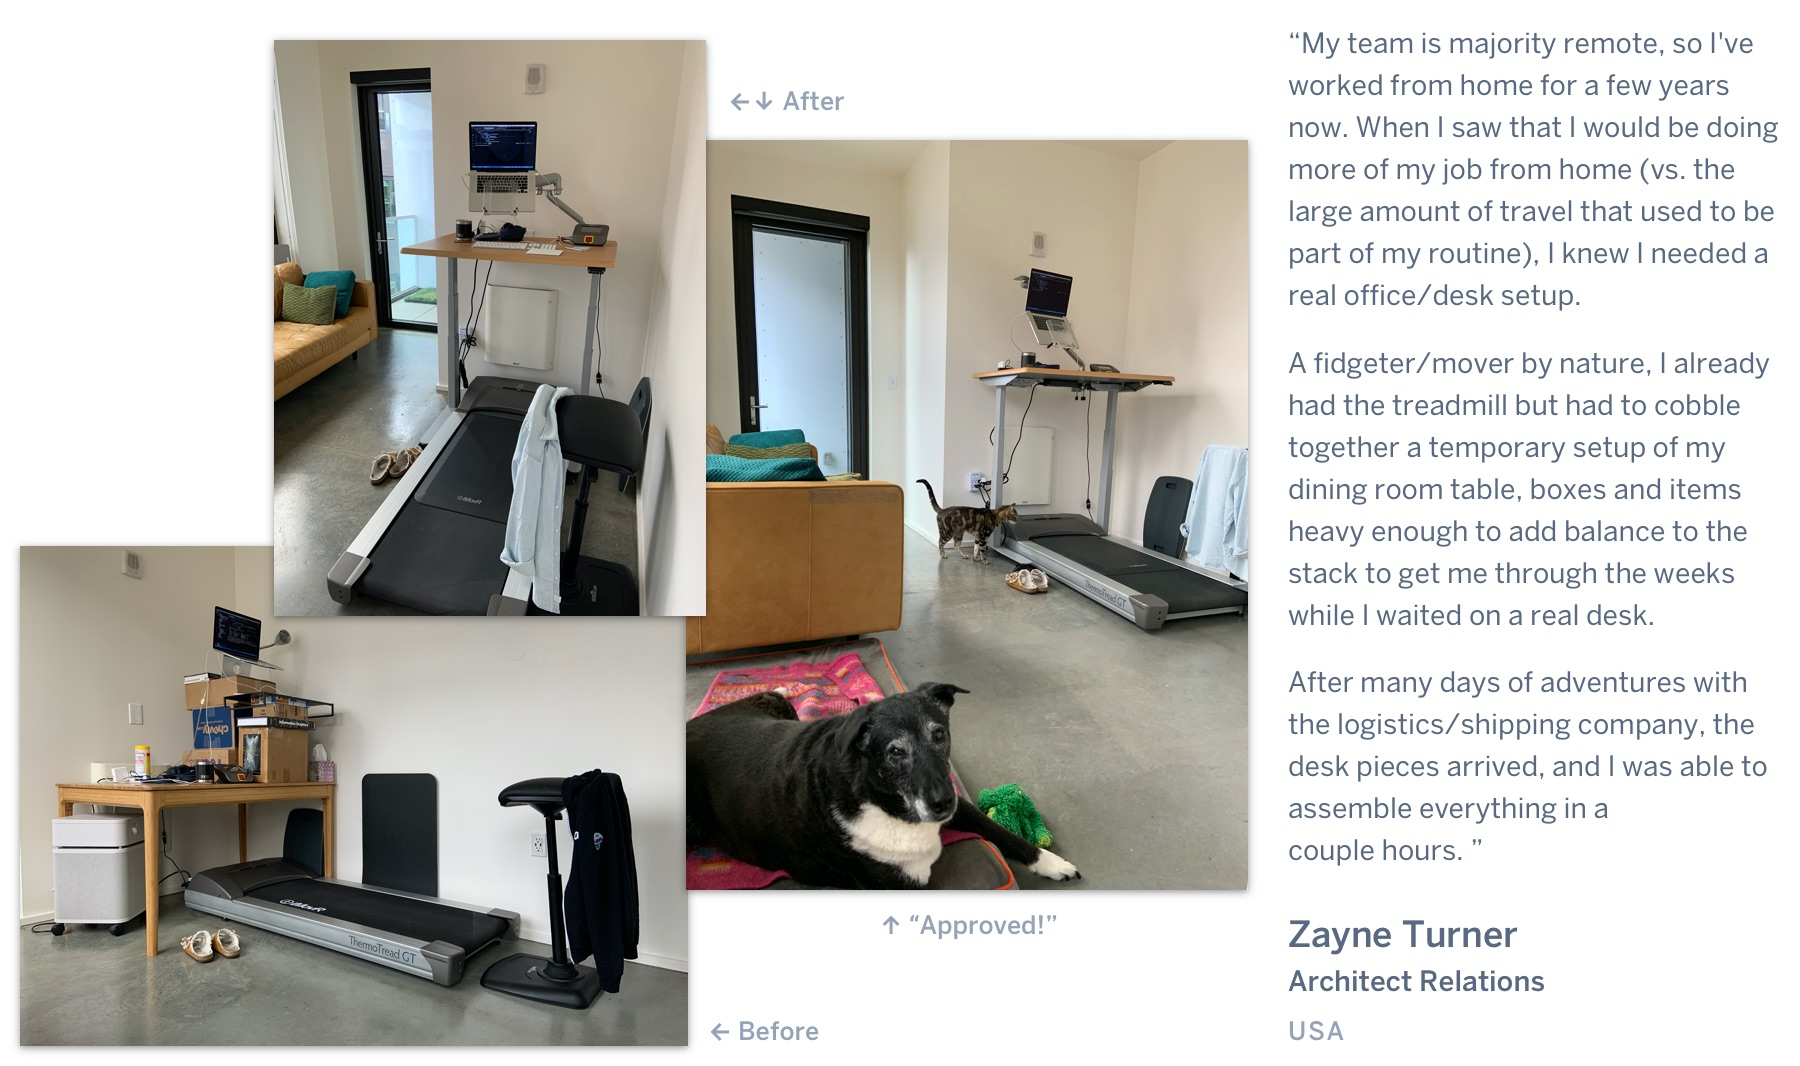 "A before photo of a standing desk made up boxes, followed by an after photo of a clean mechanical standing desk above a treadmill, with a dog and cat looking on. ""My team is majority remote, so I've worked from home for a few years now. When I saw that I would be doing more of my job from home (vs. the large amount of travel that used to be part of my routine), I knew I needed a real office/desk setup. A fidgeter/mover by nature, I already had the treadmill but had to cobble together a temporary setup of my dining room table, boxes and items heavy enough to add balance to the stack to get me through the weeks while I waited on a real desk. After many days of adventures with the logistics/shipping company, the desk pieces arrived, and I was able to assemble everything in a